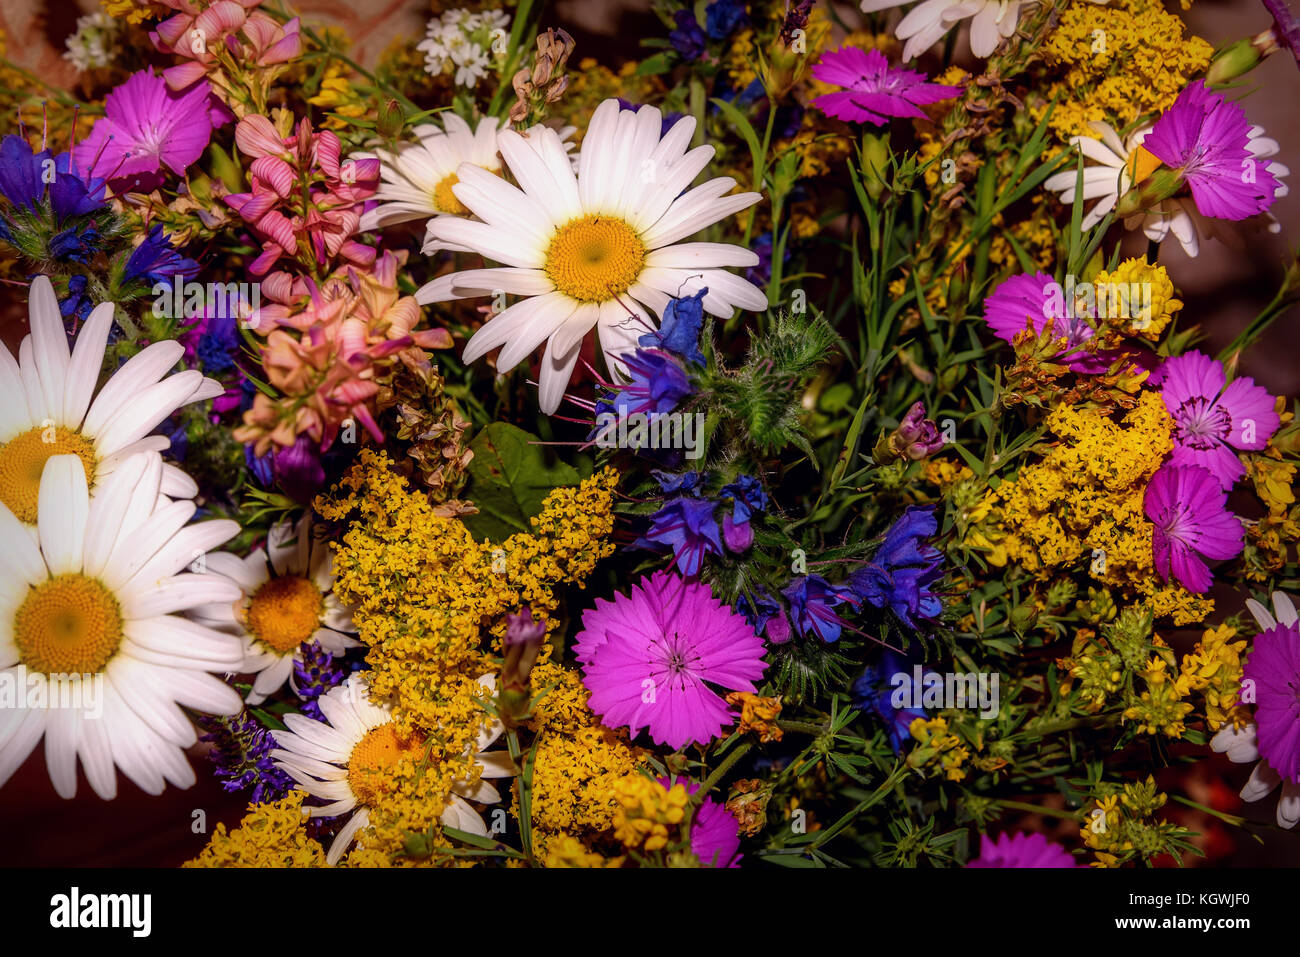 Beautiful bright floral background with colorful bouquet of different wildflowers - Stock Image